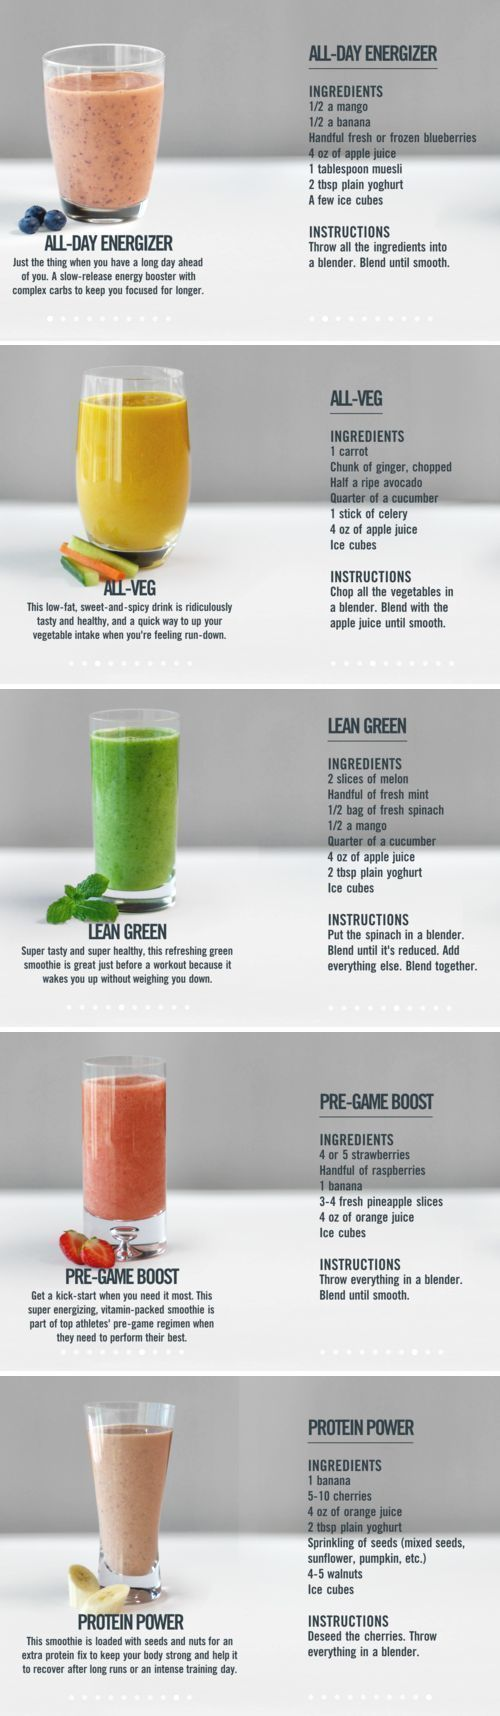 Sometimes all it takes is a little kick start in the morning to give your day a fresh start. With these delicious smoothie recipes, you'll have enough energy to be running around from work to dress fittings to meeting your vendors. - via iHerb